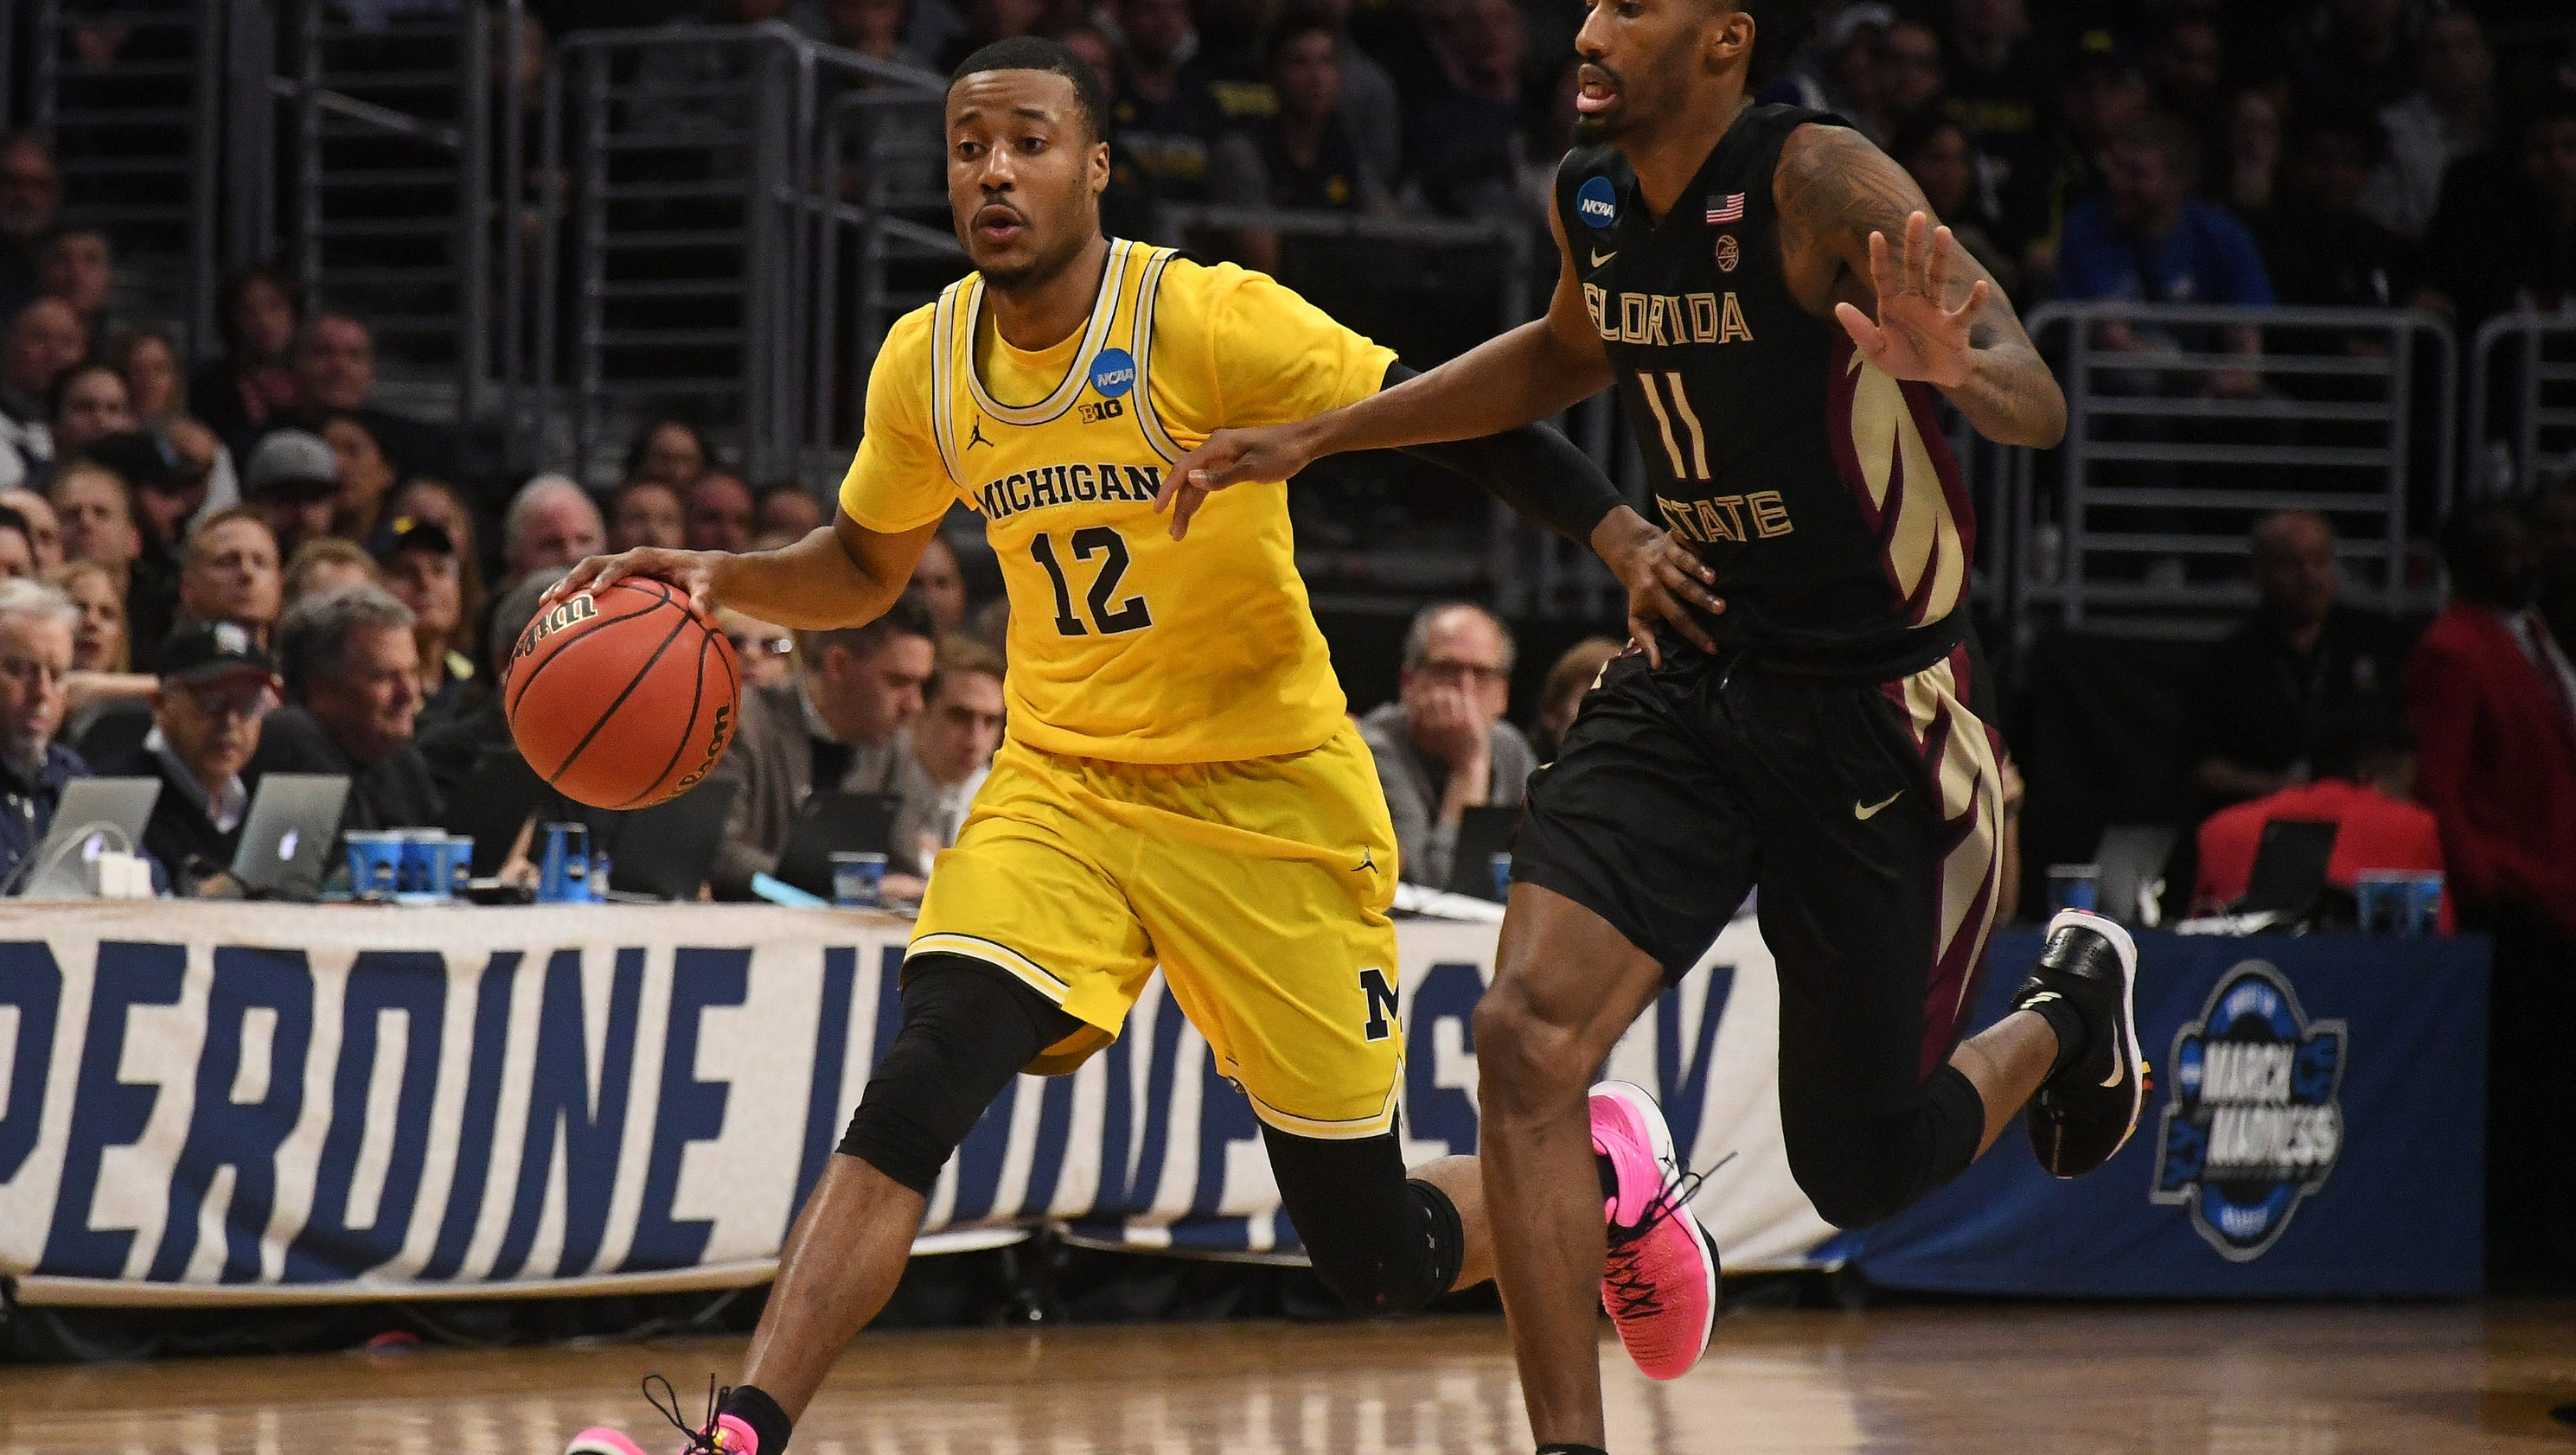 NCAA tournament: Michigan heads to Final Four after beating Florida State